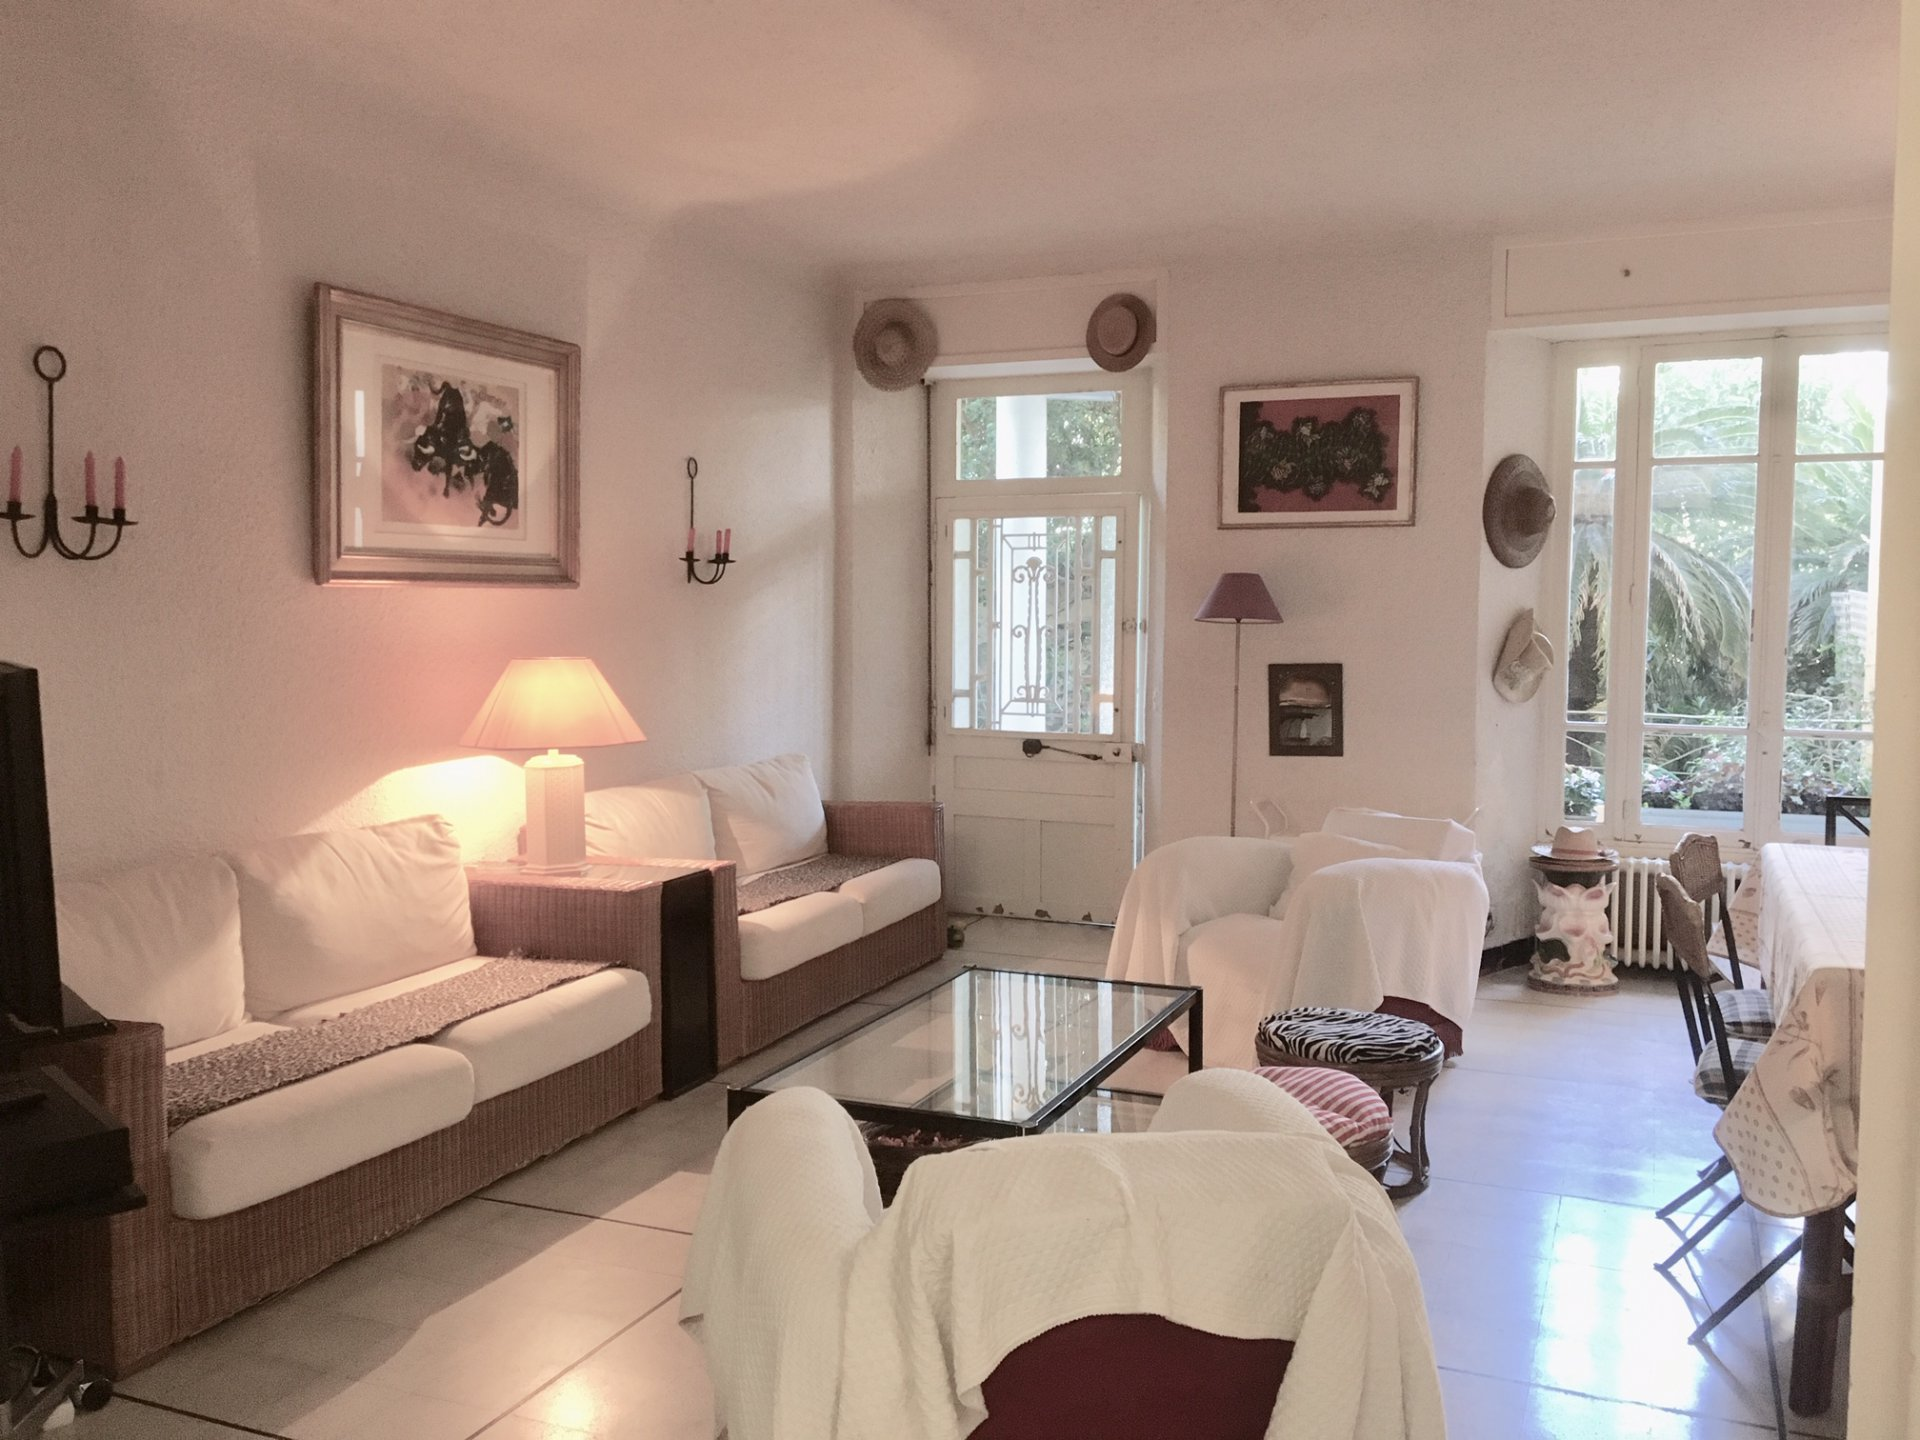 3-Bedroom apartment of 110 sqm with Garden Place de L'Étang